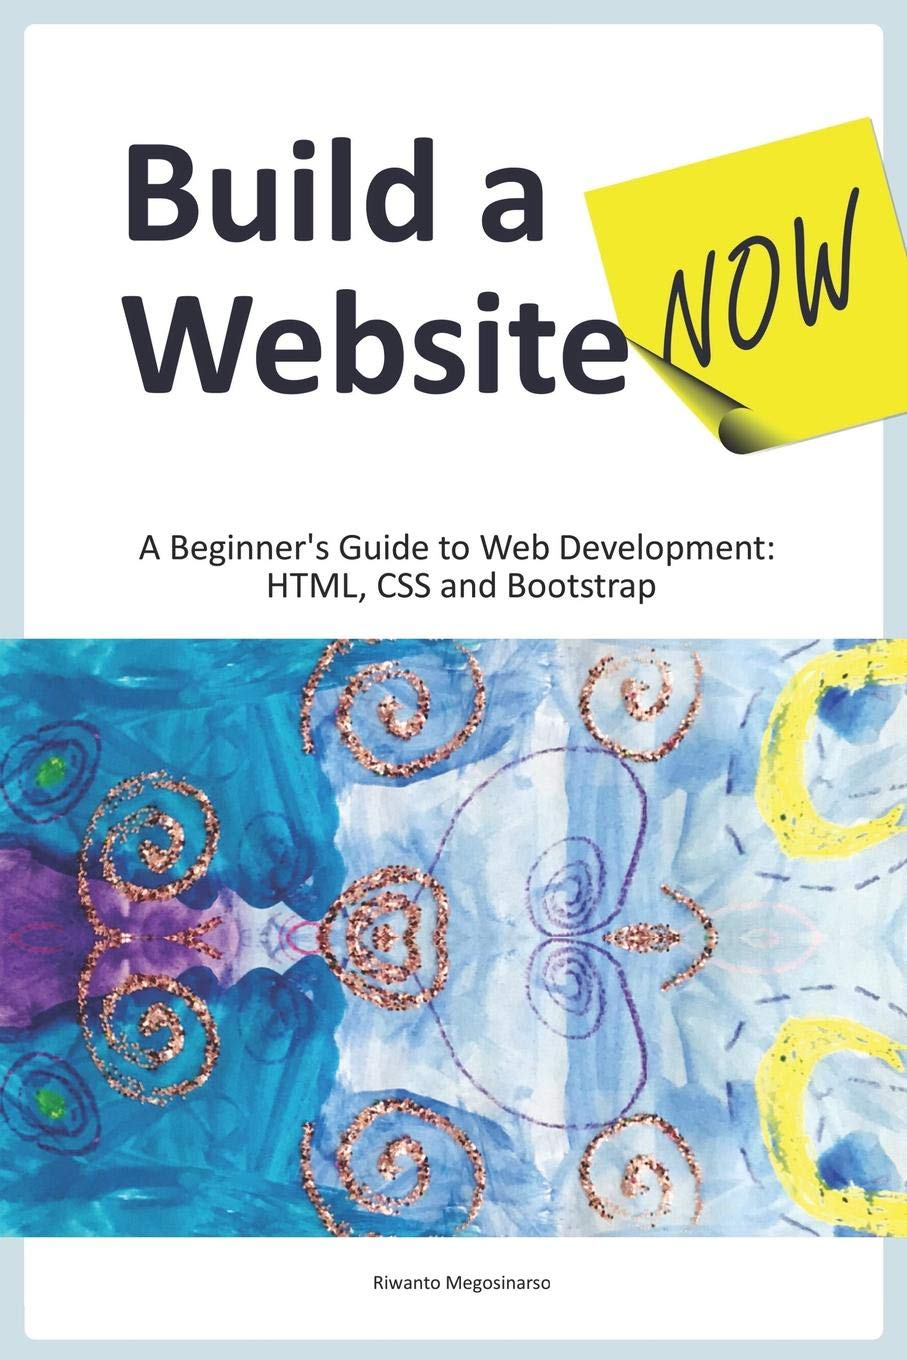 Build a Website Now: A Beginner's Guide to Web Development: HTML, CSS and Bootstrap